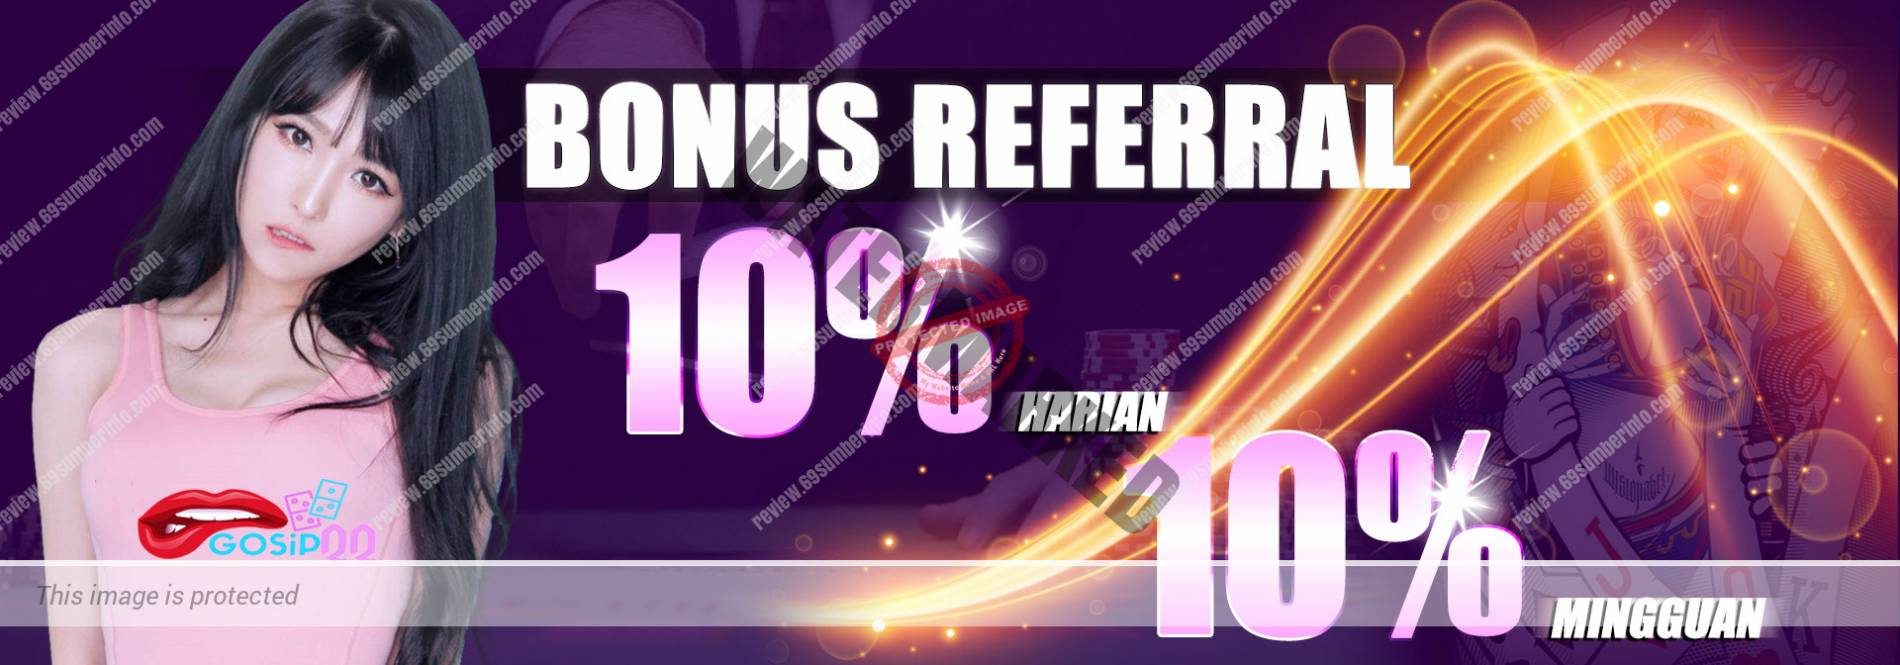 Bonus Referral GosipQQ